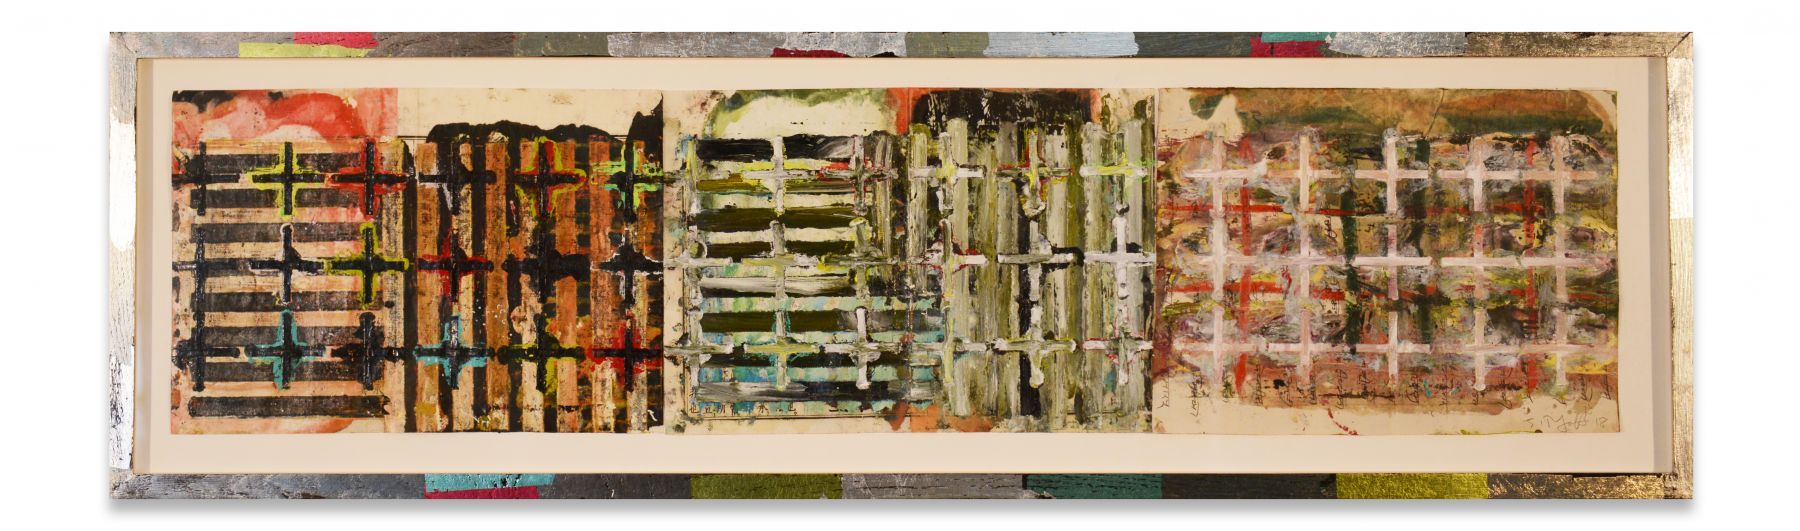 +'s & -'s #57, 2018, Oil stick, encaustic, vintage Indian paper in artist's frame, 13 5/8 x 46 x 1 1/4 inches, 34.6 x 116.8 x 3.2 cm, MMG#30910